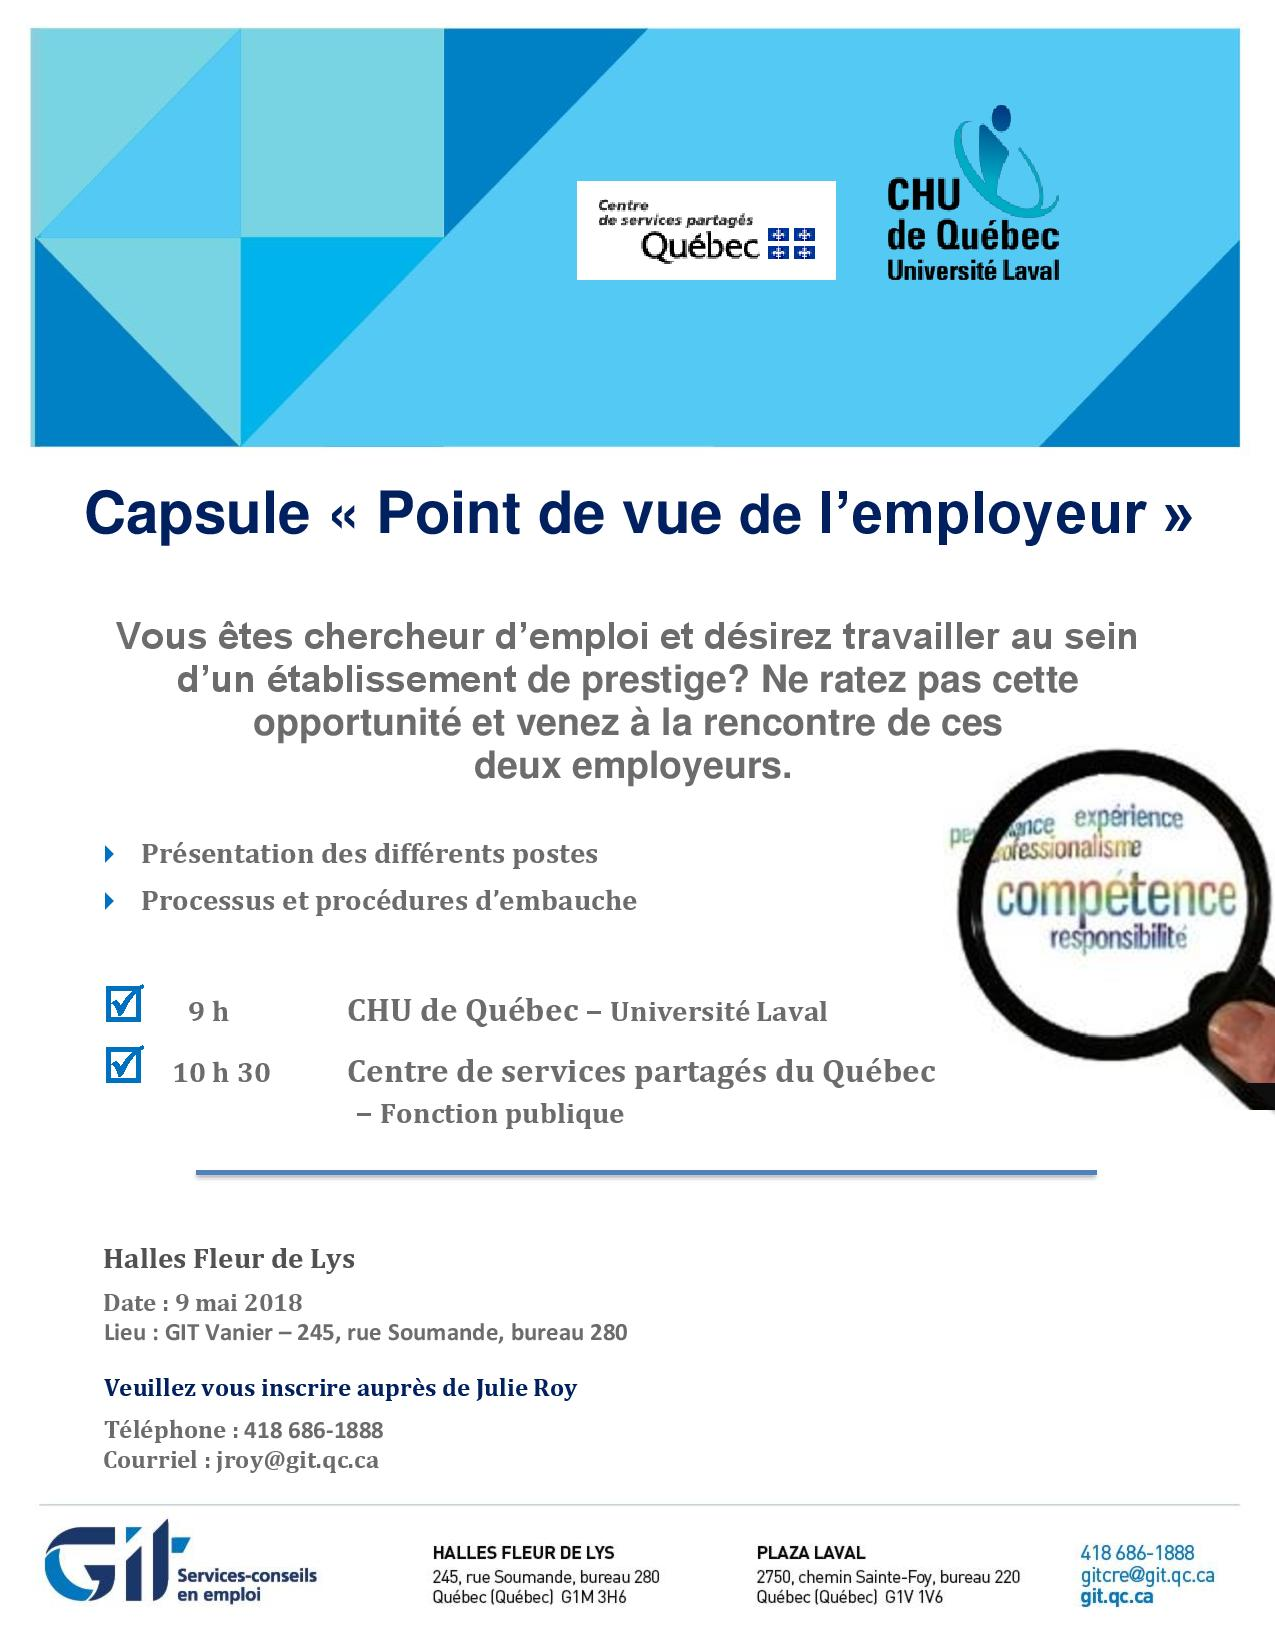 Capsule « Point de vue de l'employeur »